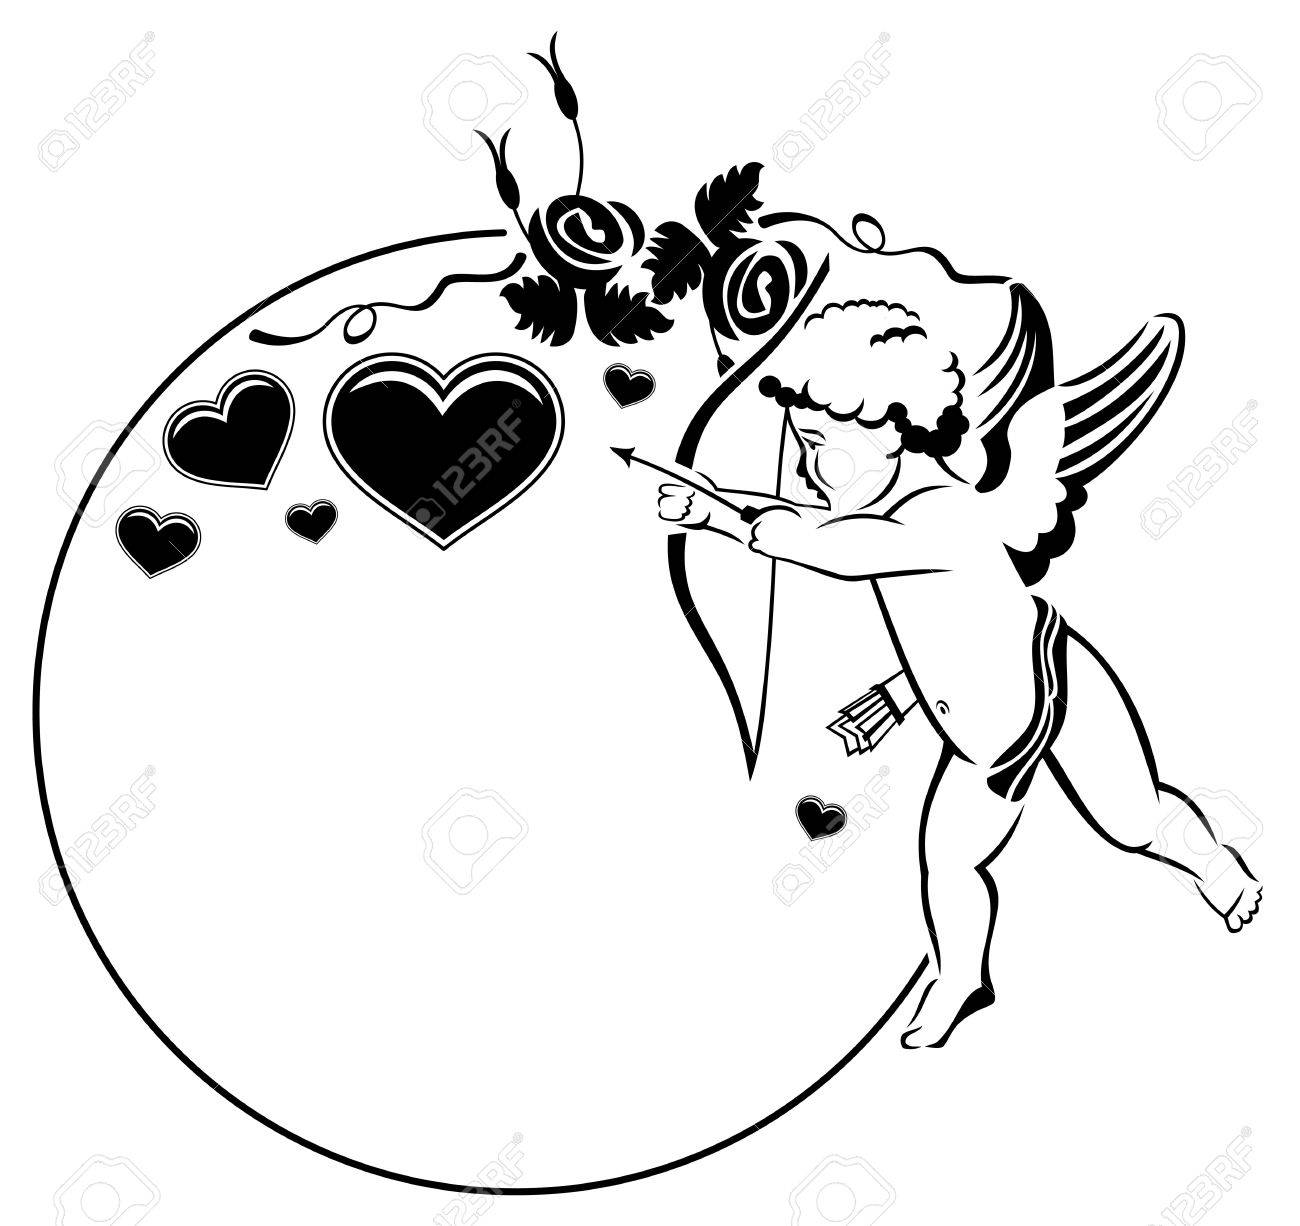 Valentine cupid clipart black and white